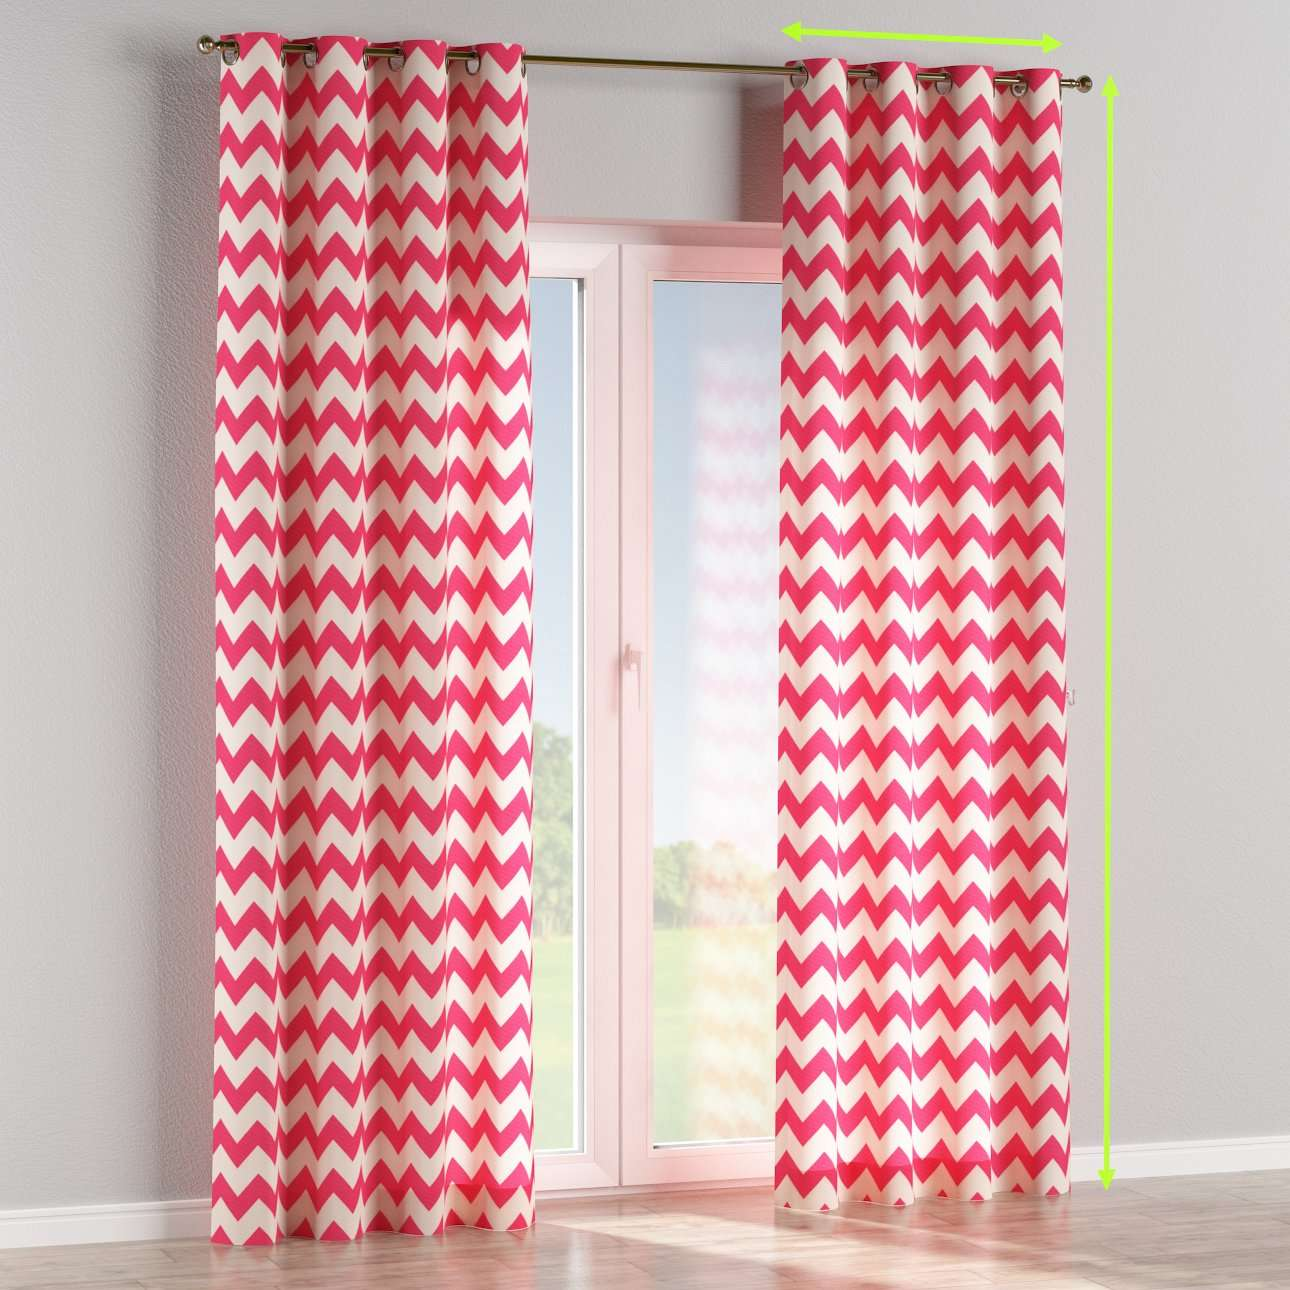 Eyelet curtains in collection Comic Book & Geo Prints, fabric: 135-00